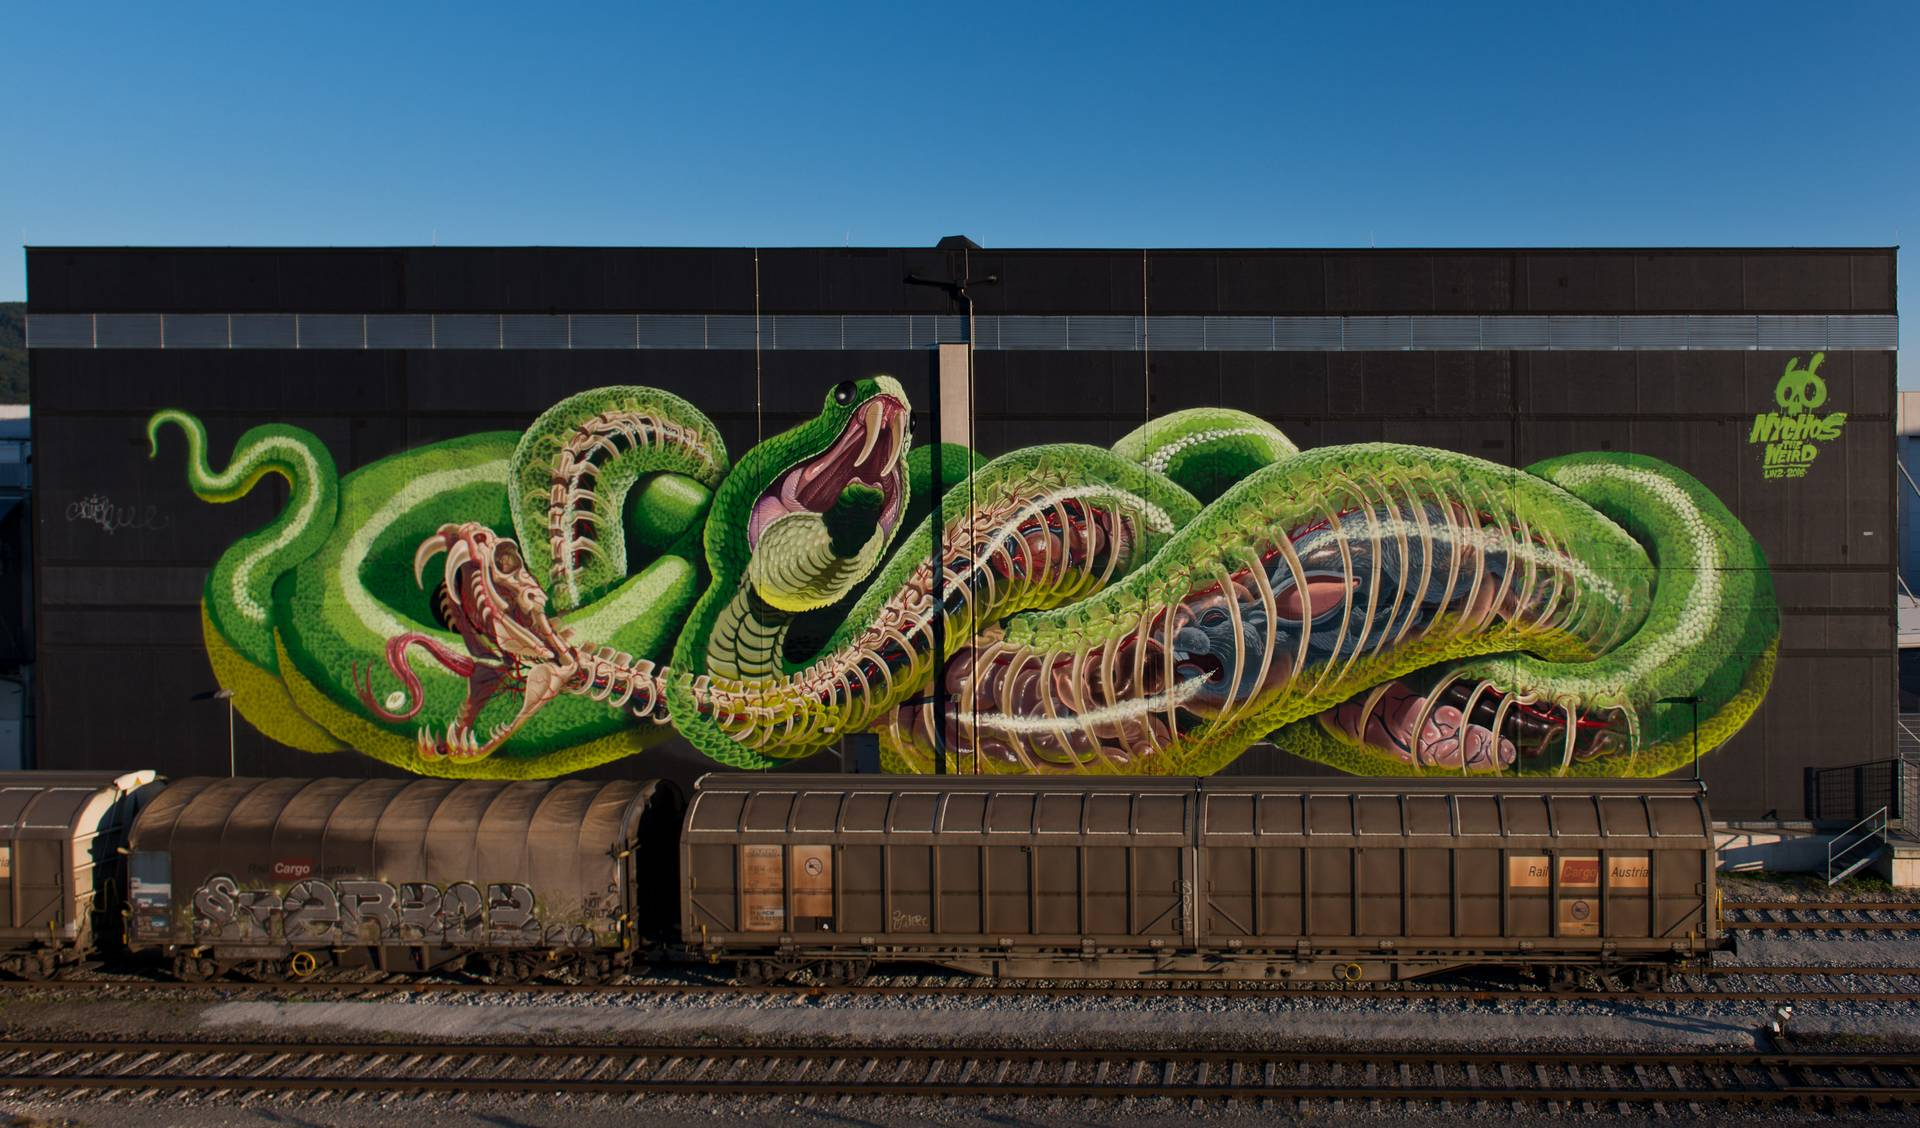 bench-talk-nychos-12.jpg